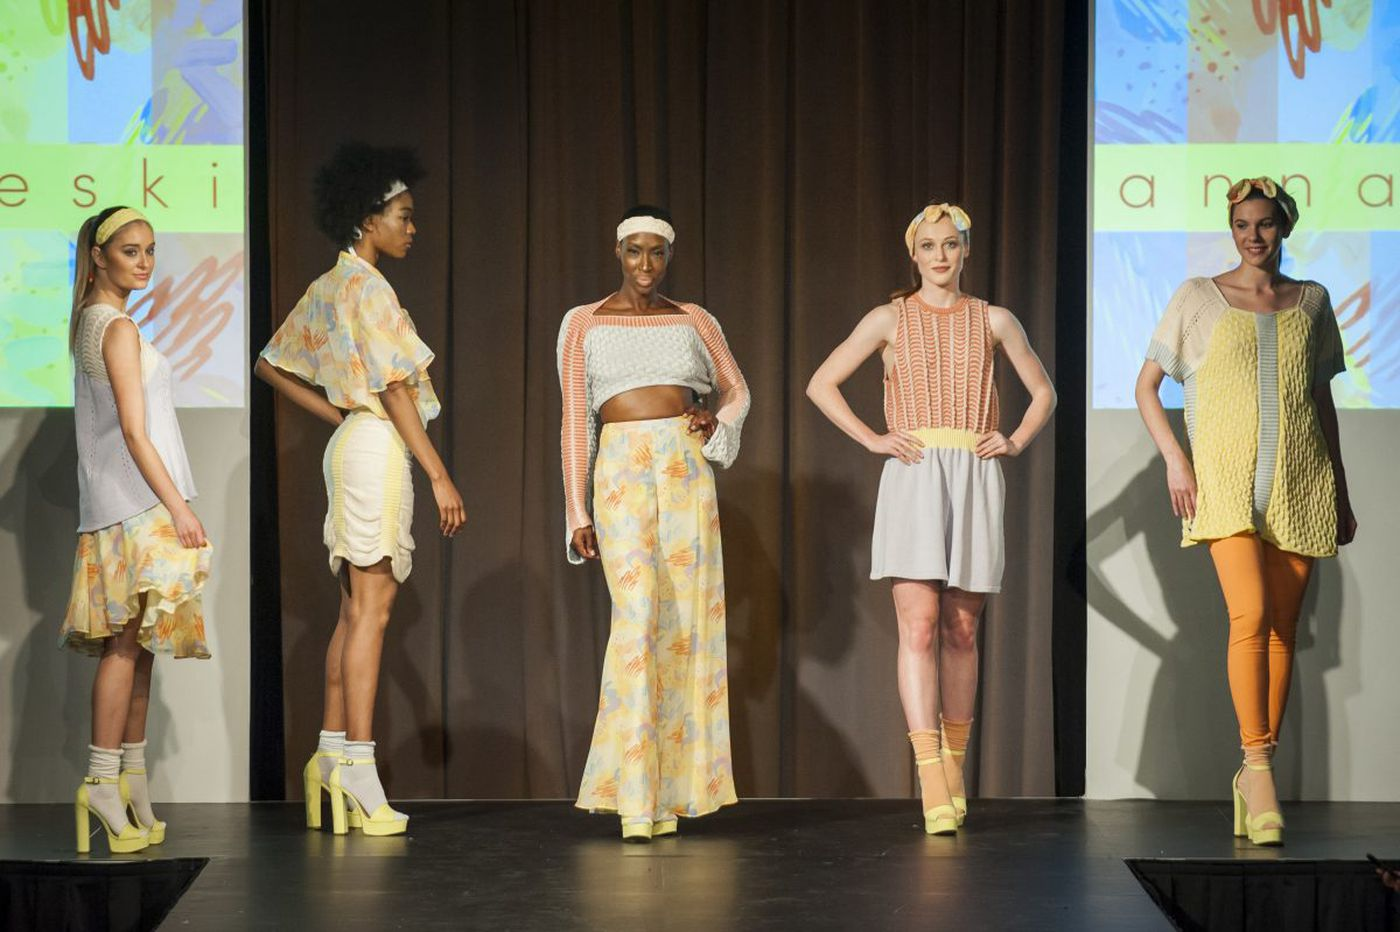 Student Fashion Shows: Drexel students focus on nature